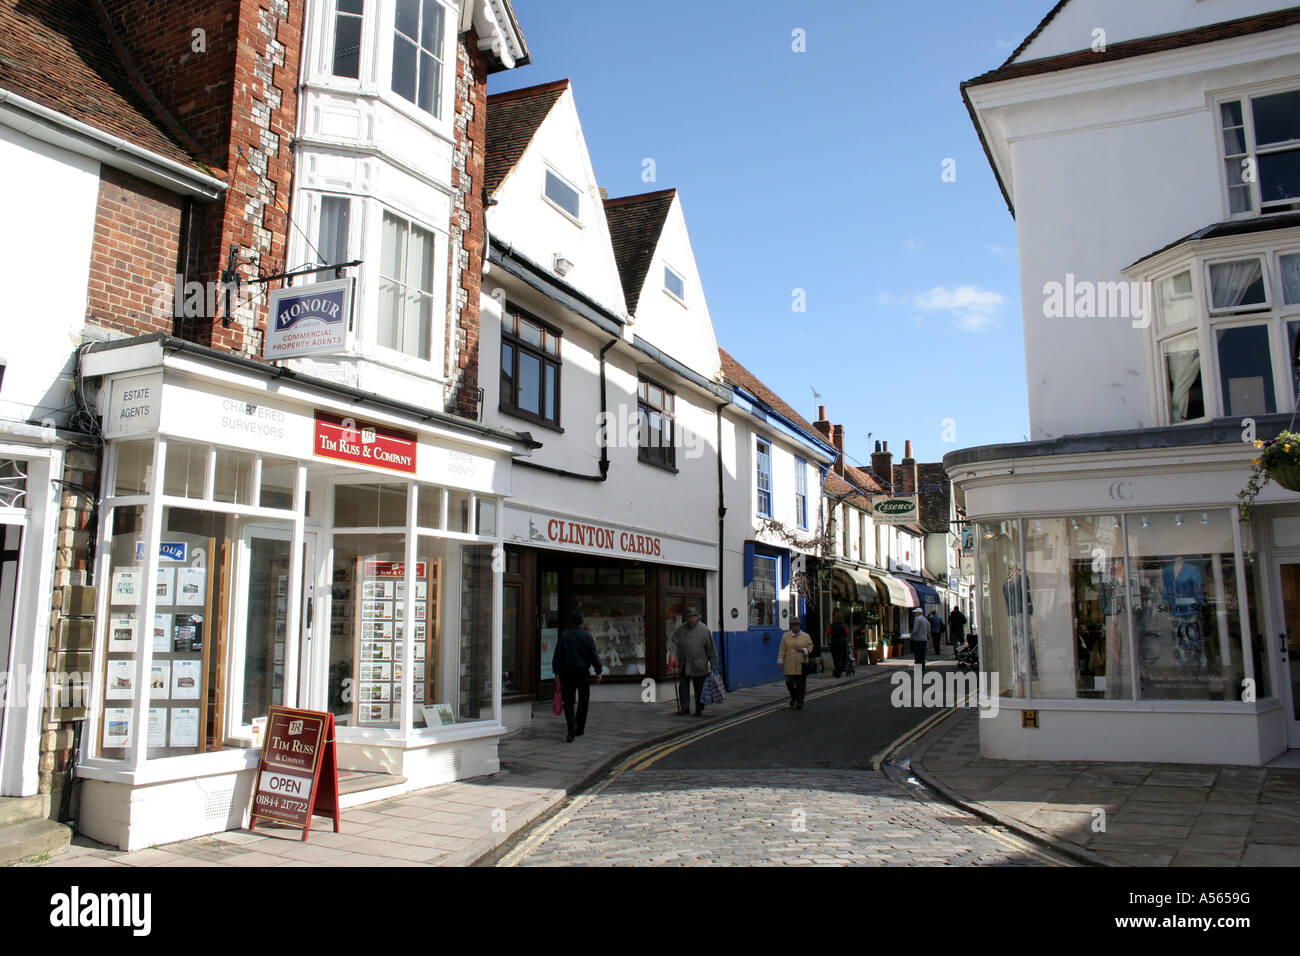 Shop fronts in Thame Oxfordshire. - Stock Image